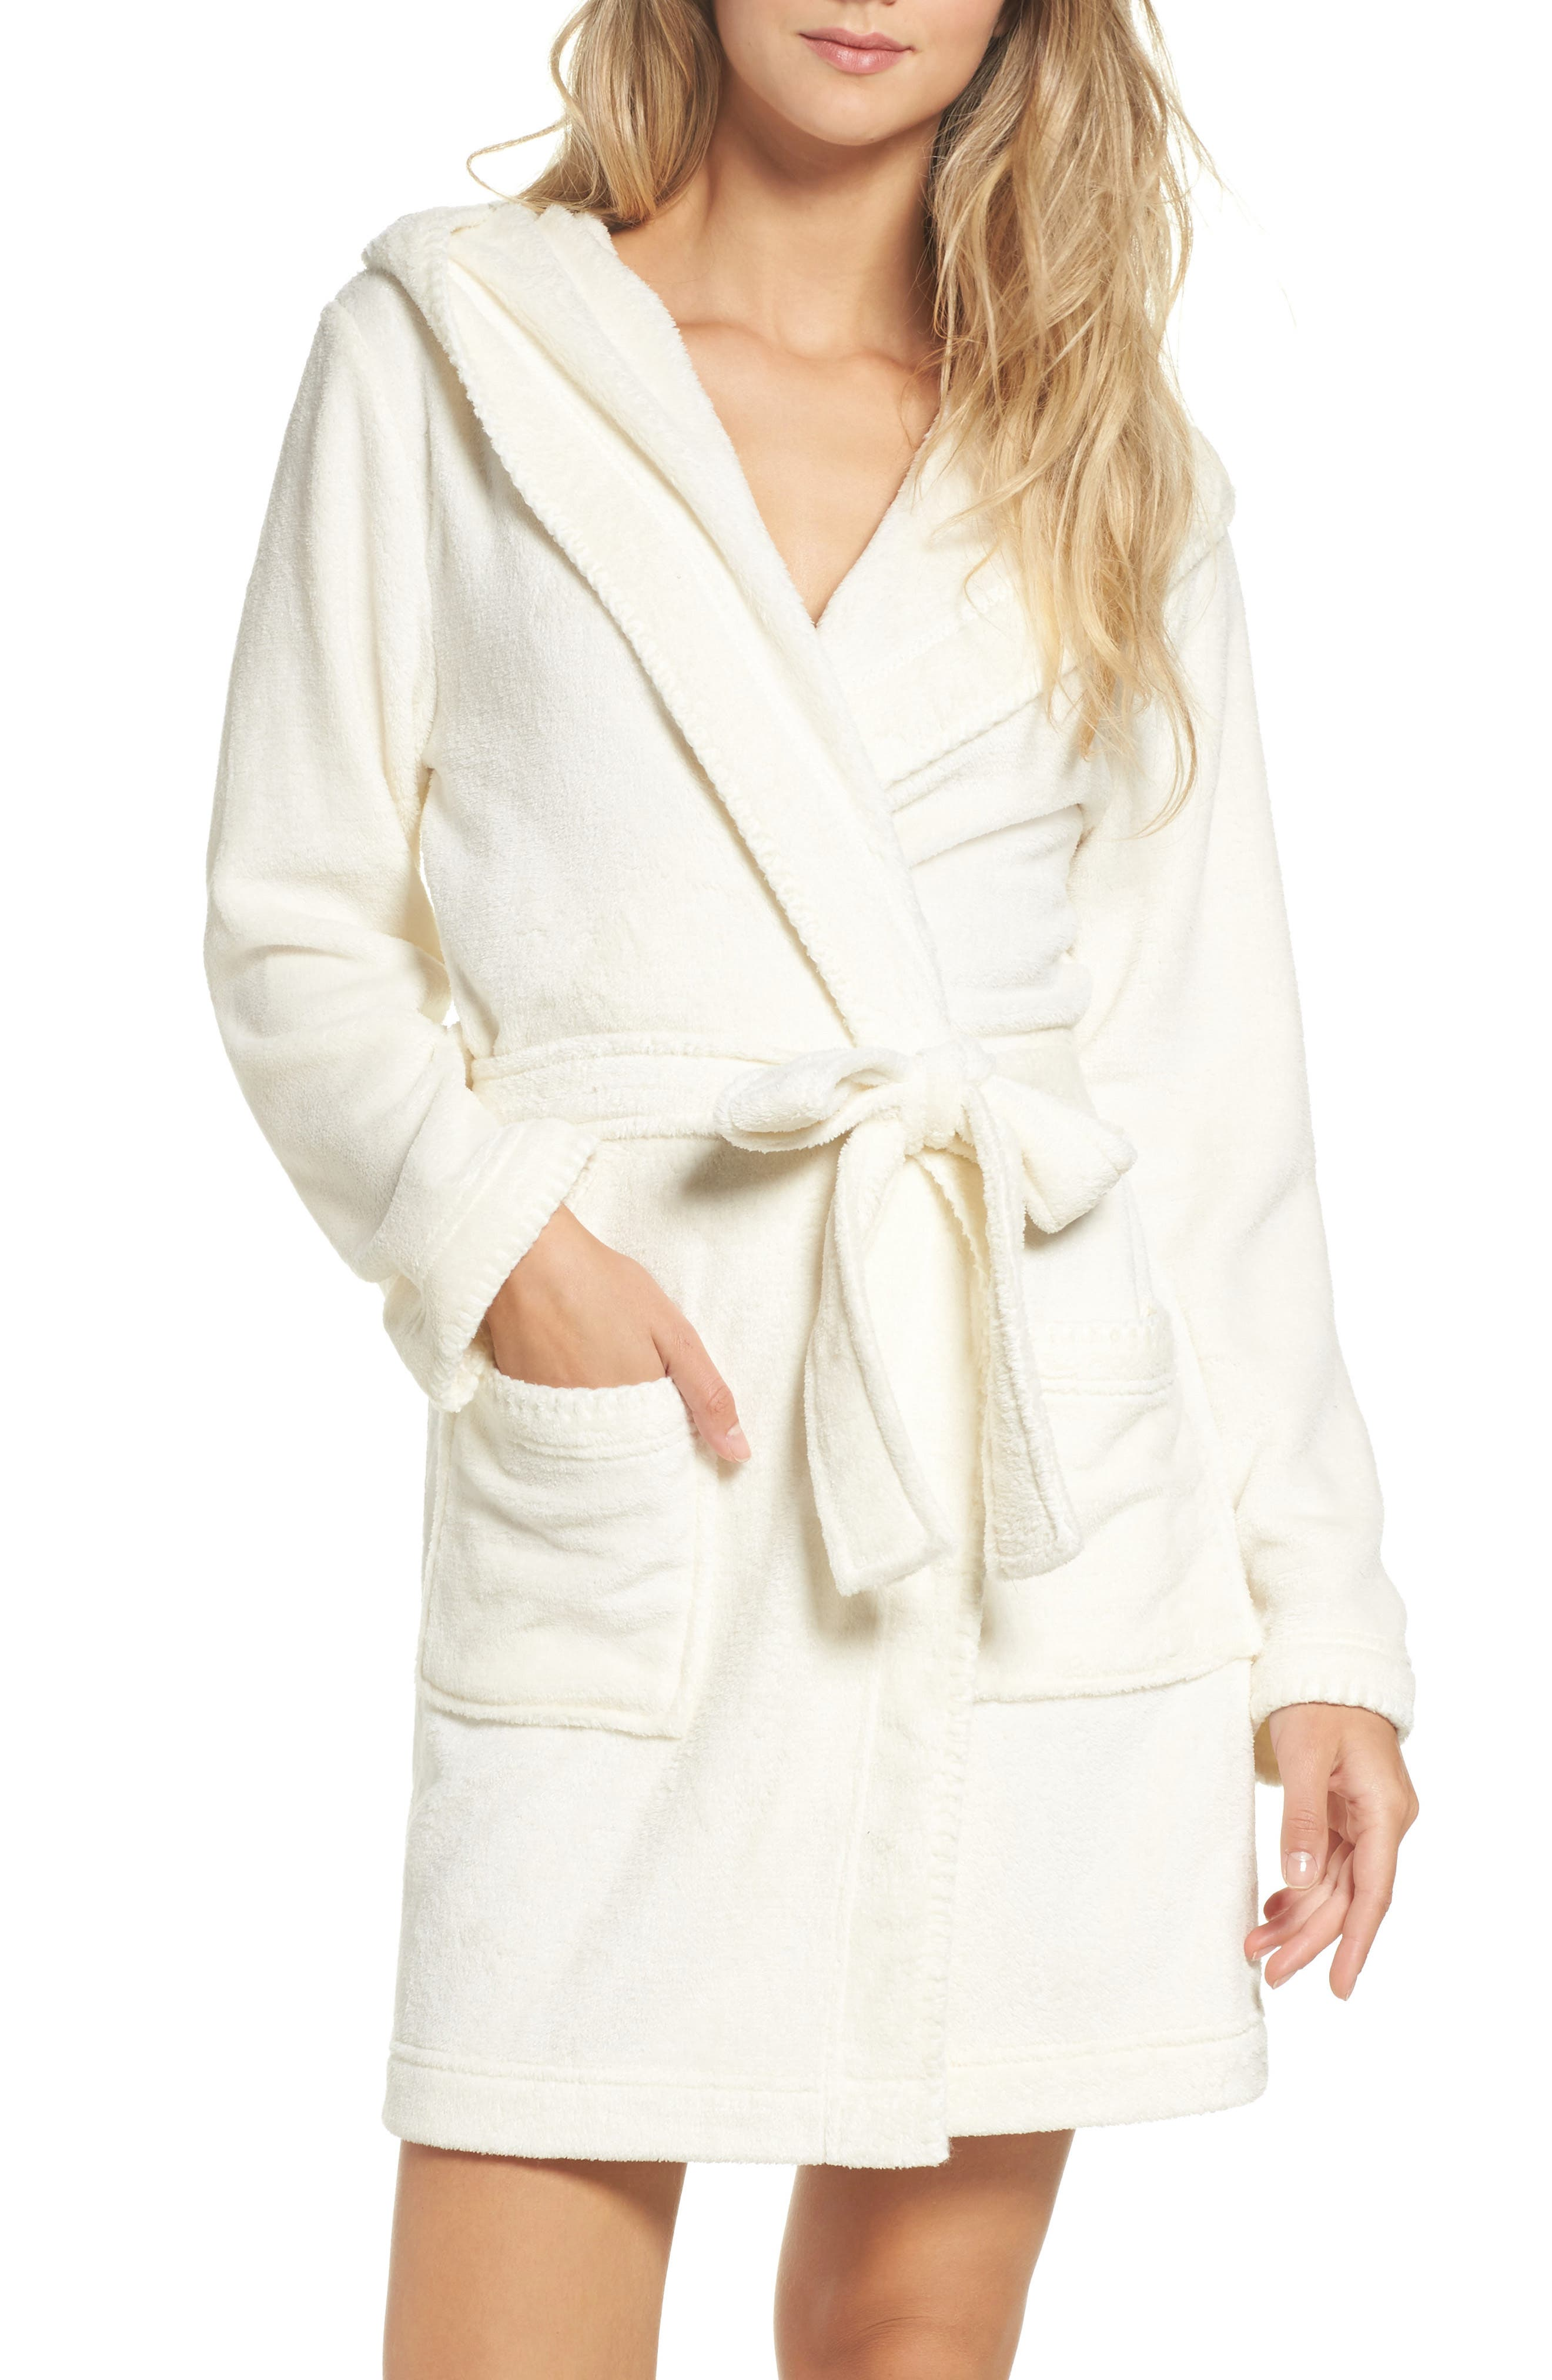 Starry Night Plush Short Robe,                             Main thumbnail 1, color,                             Ivory Egret